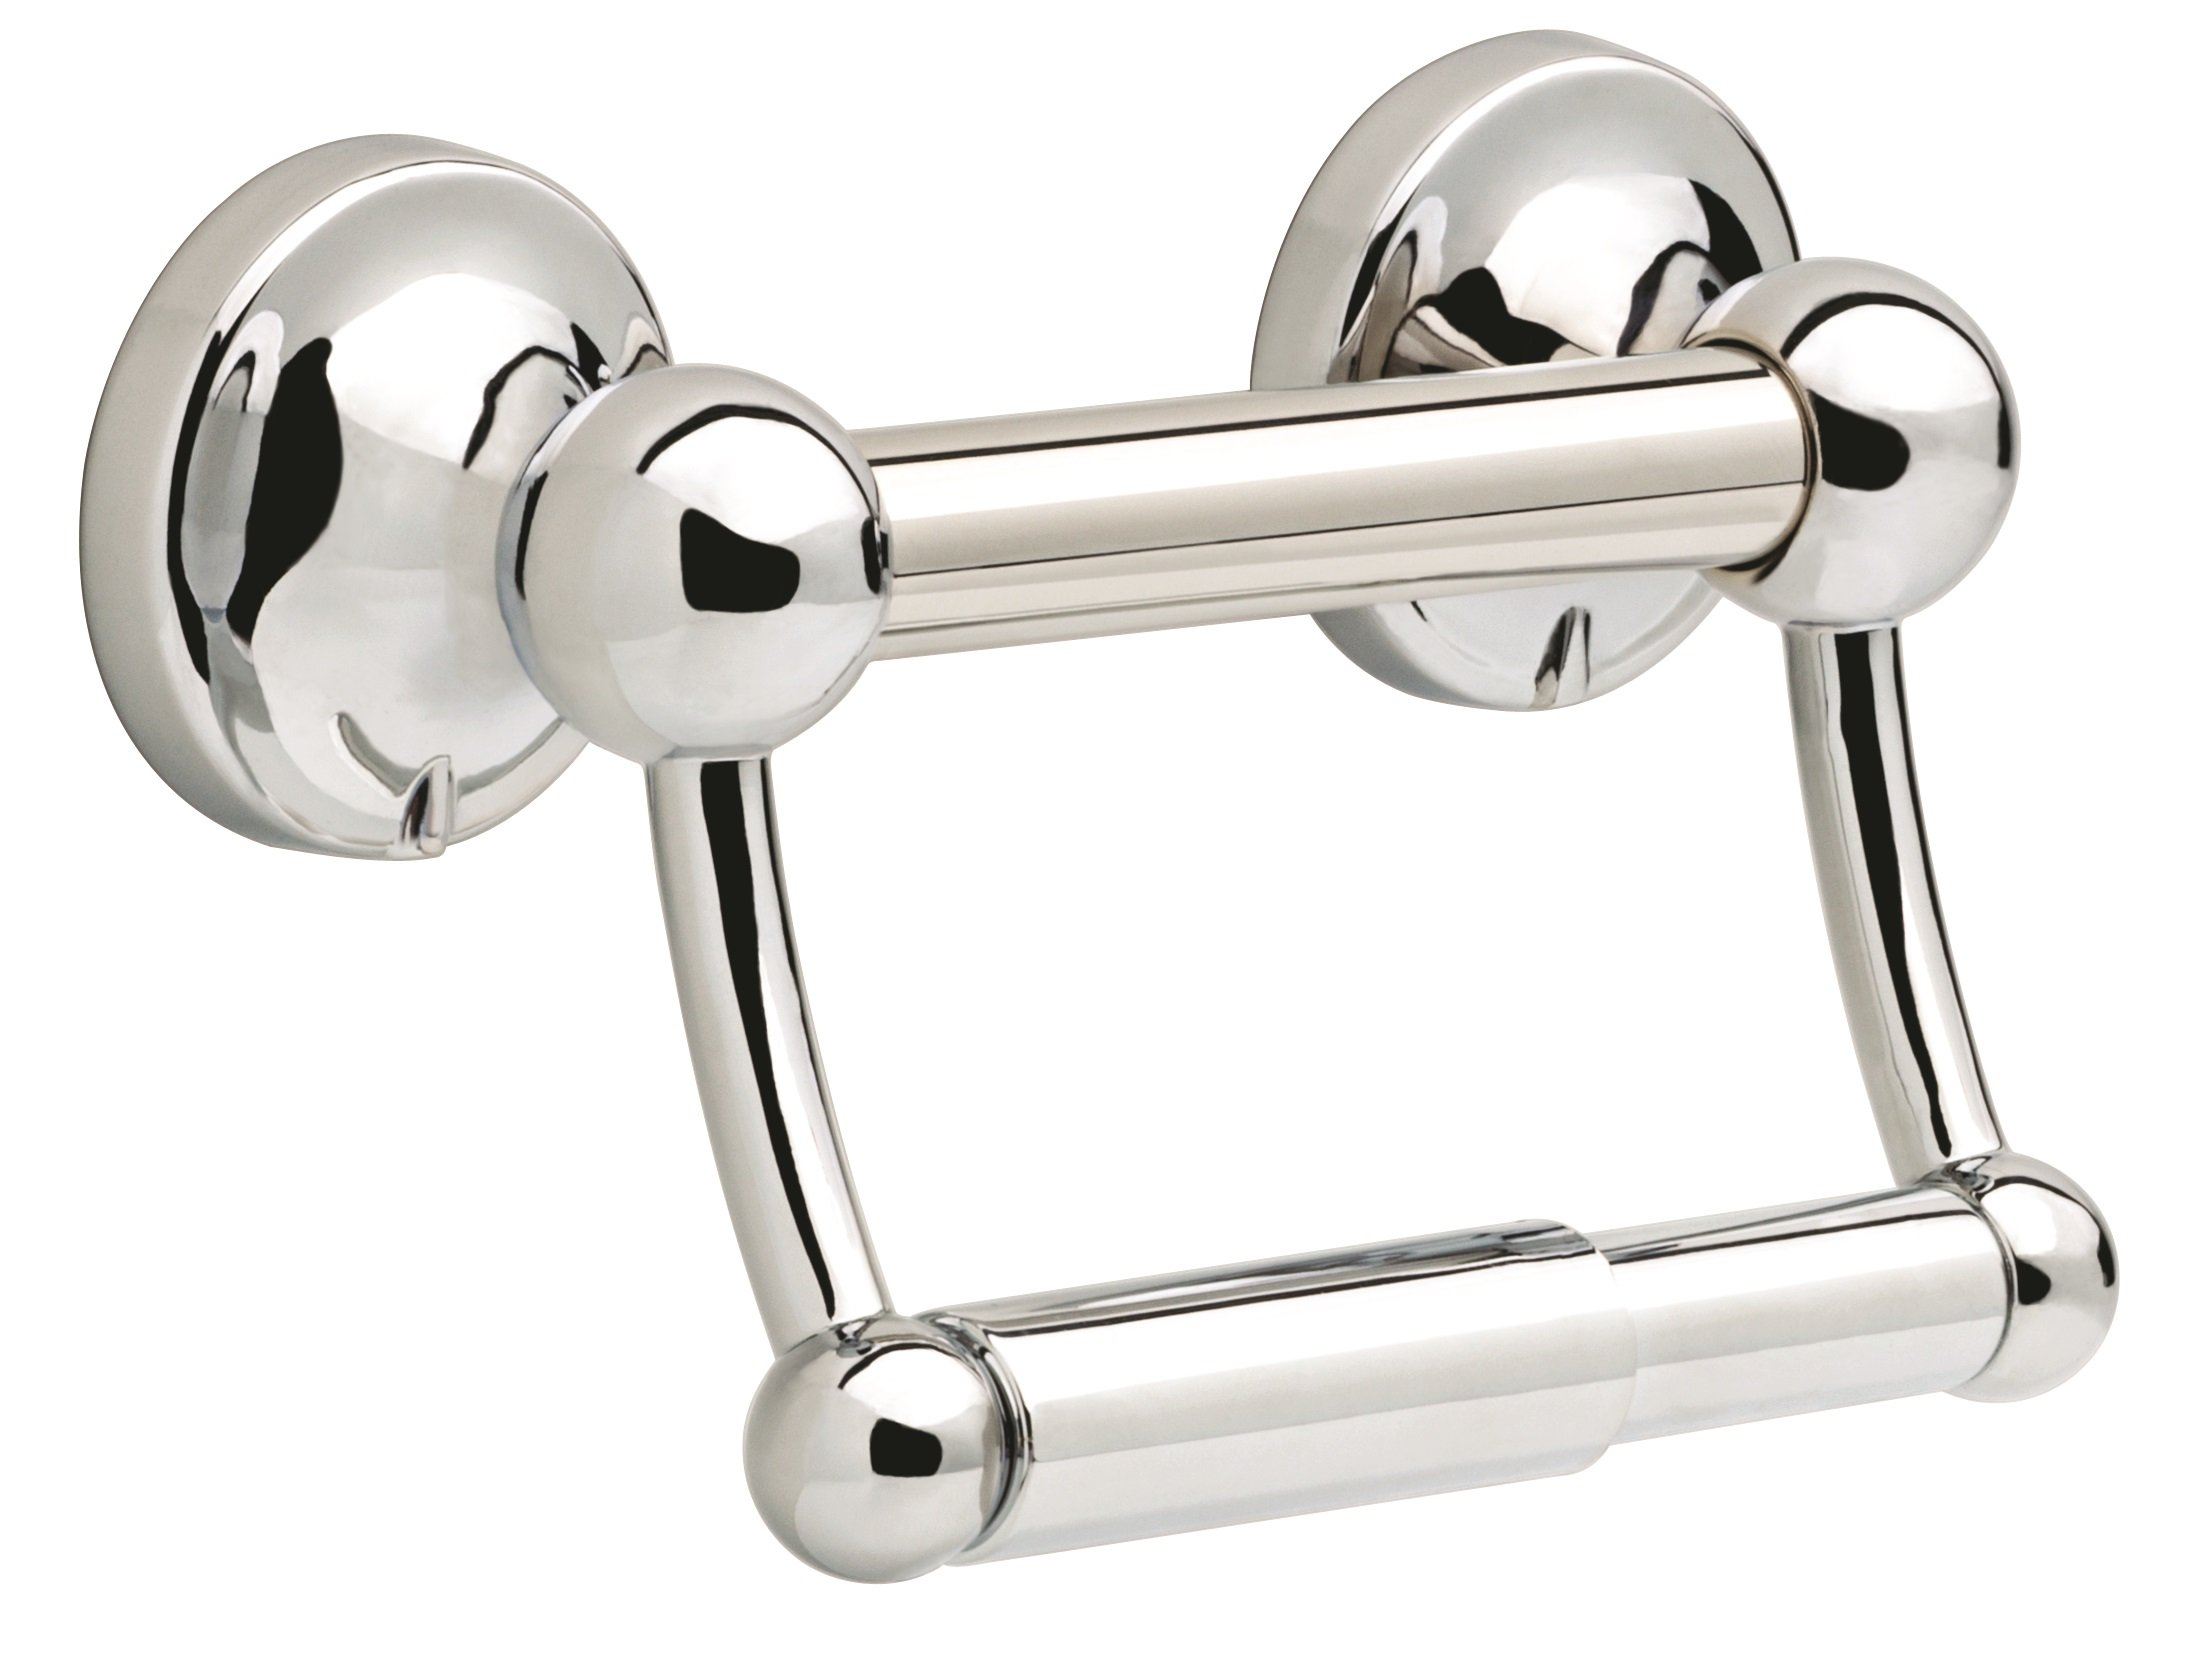 Delta DF704PC Bath Hardware Accessory Toilet Paper Holder with Assist Bar, Polished Chrome